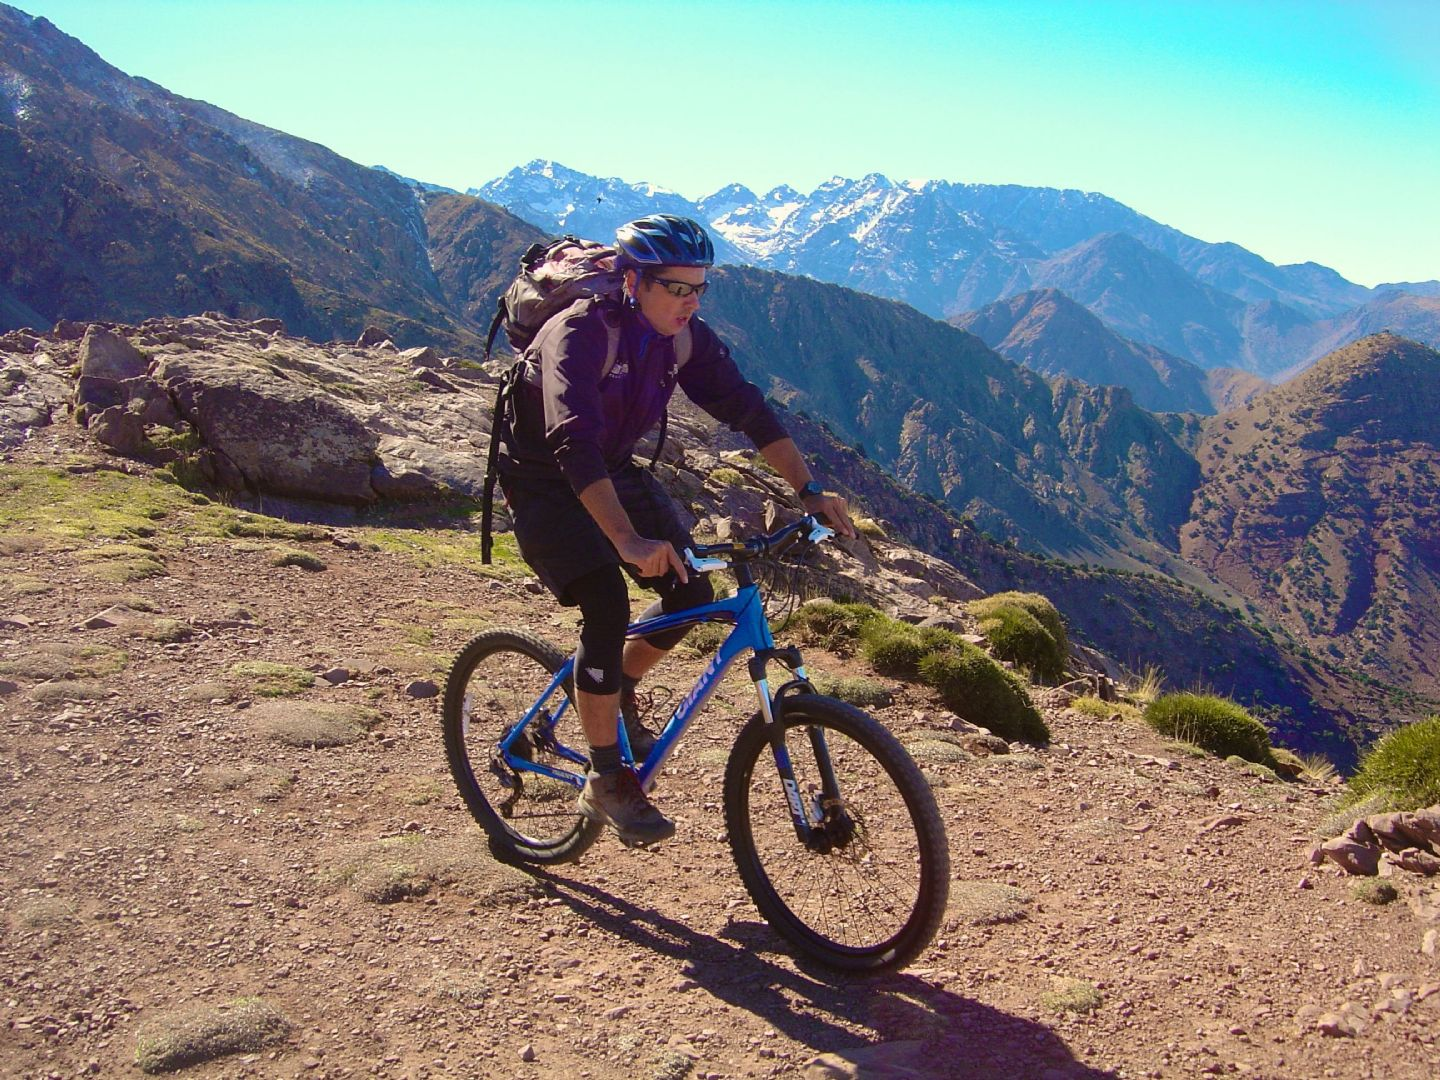 morocco traverse 1 (1).jpg - Morocco - High Atlas Traverse - Mountain Biking